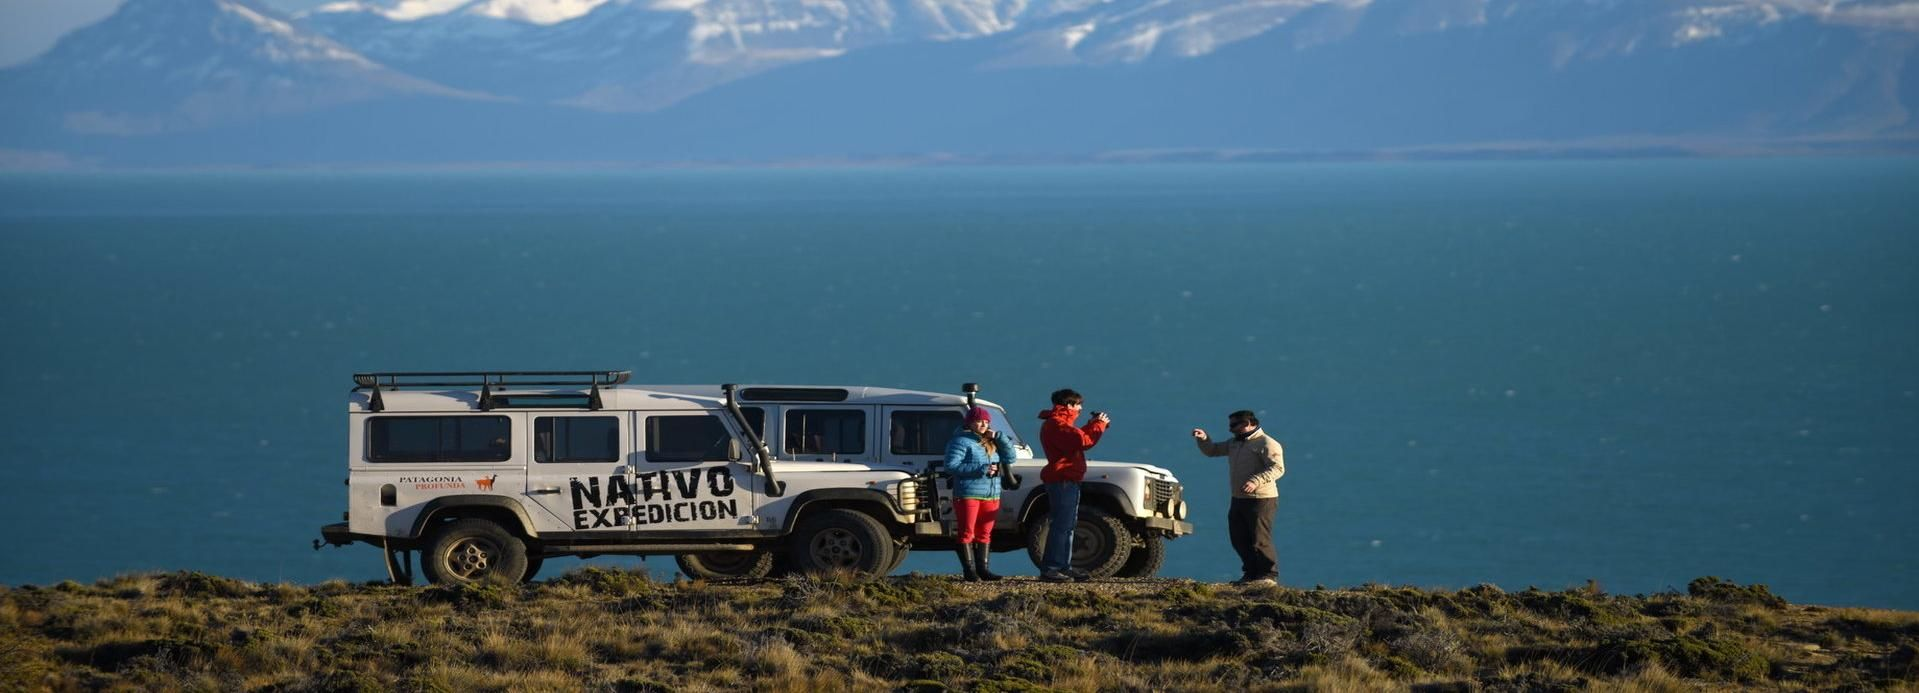 El Calafate: Native Cultures 4x4 Half-Day Excursion